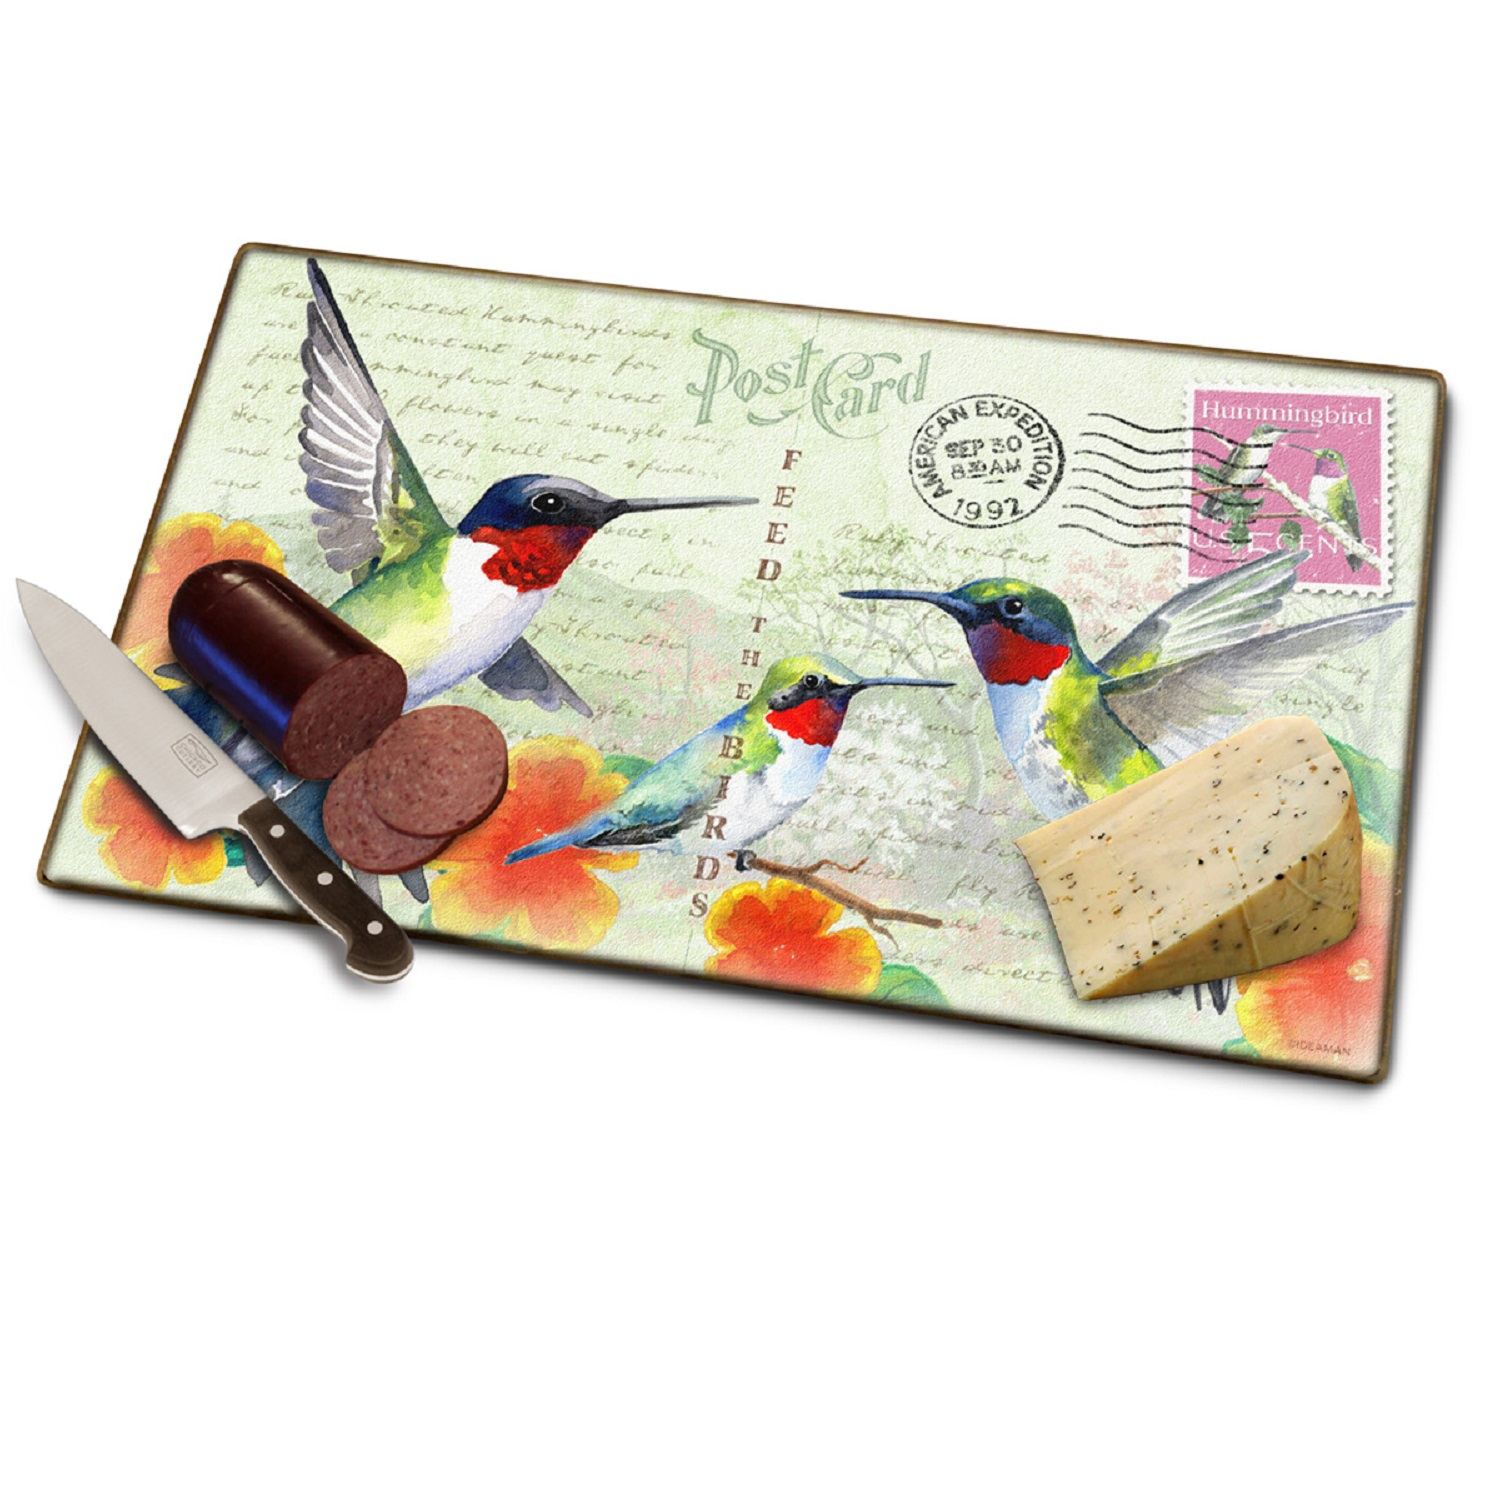 American Expedition Cutting Board - Hummingbird Postcard